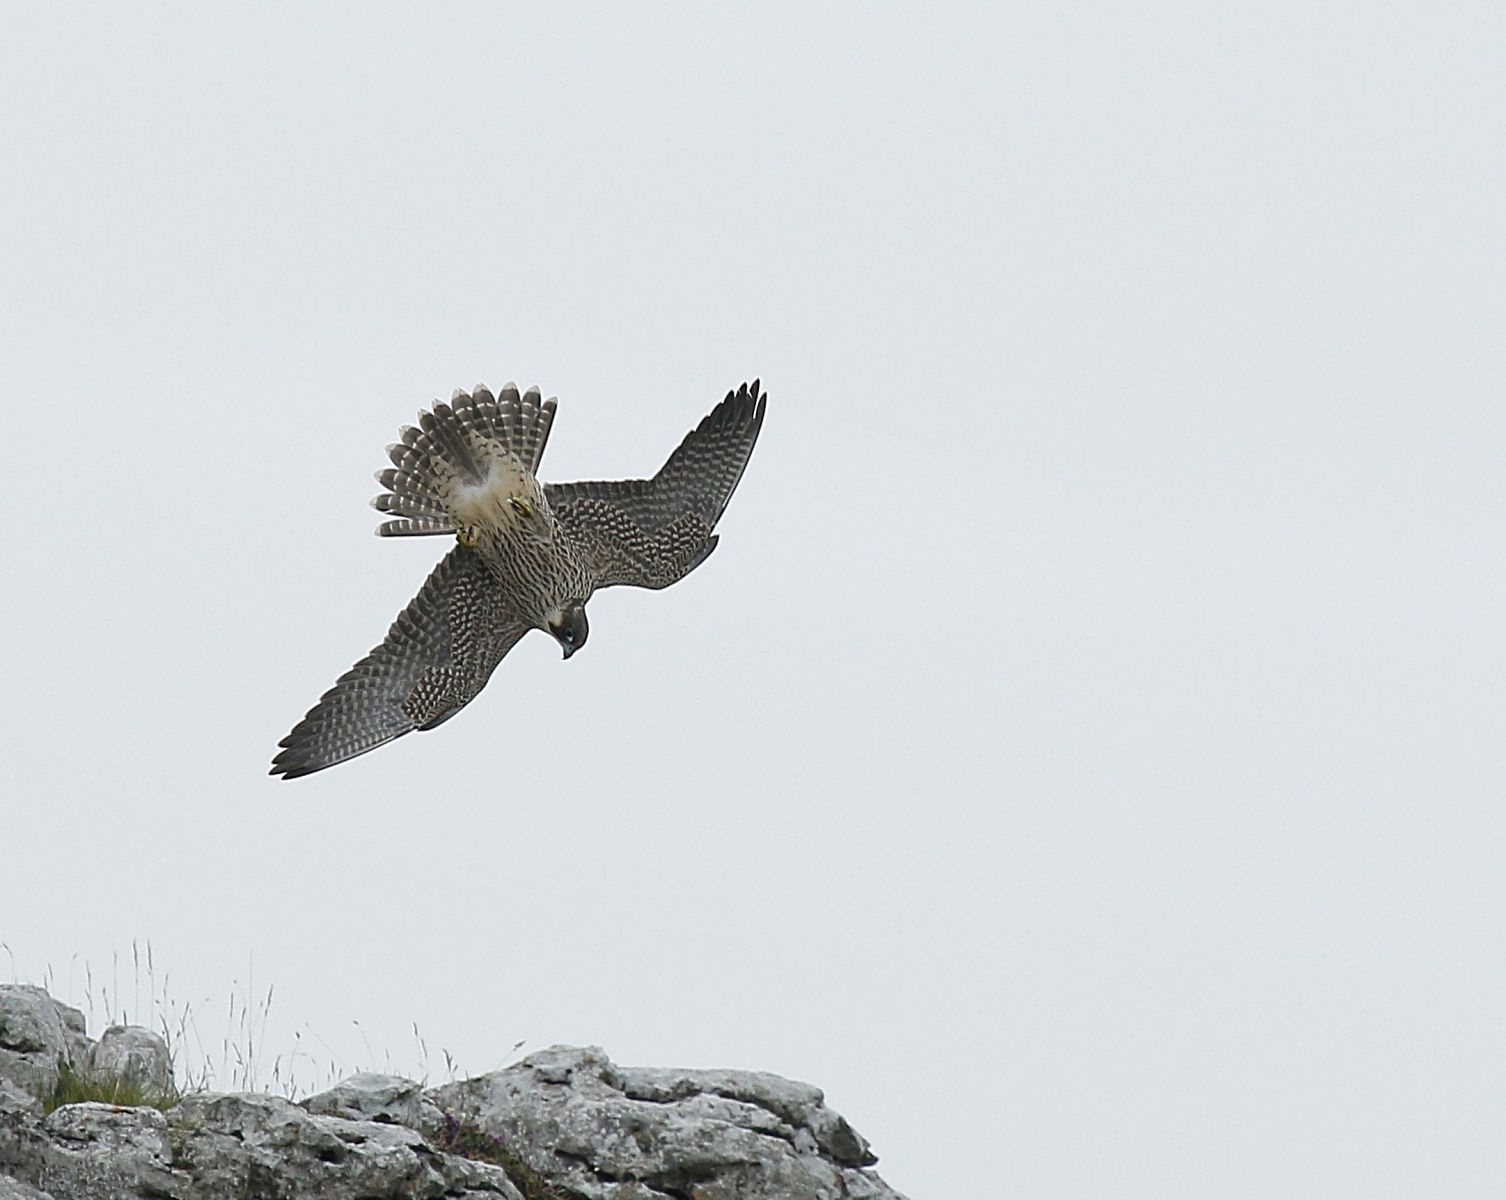 Peregrine falcon in the Yorkshire Dales by David Dimmock